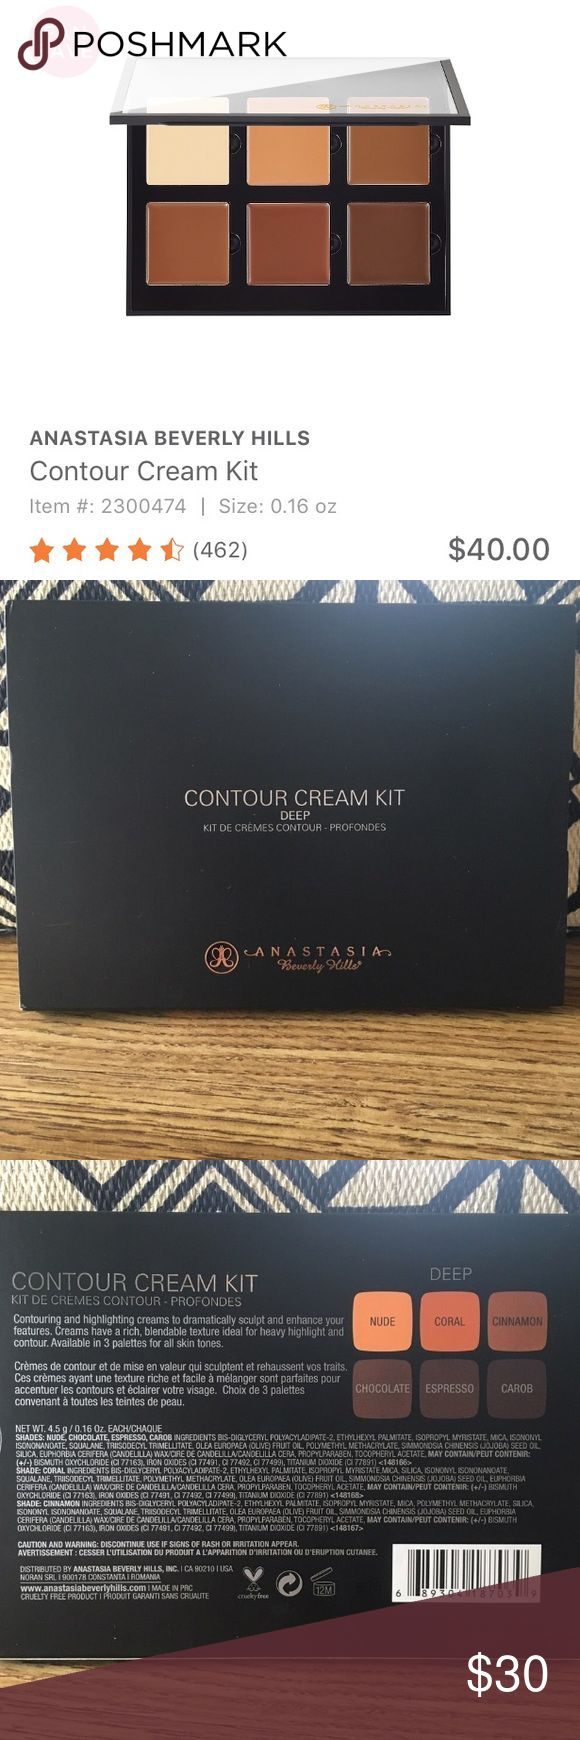 ❗️SALE❗️NIB: ABH Cream Contour kit Brand new! Only opened to take pictures. Definitely not my shade! My mom picked it up for me bc I was out and she must not have checked the shade 😂 Swatches are from online, not from me. Reasonable offers please. No trades Anastasia Beverly Hills Makeup Bronzer